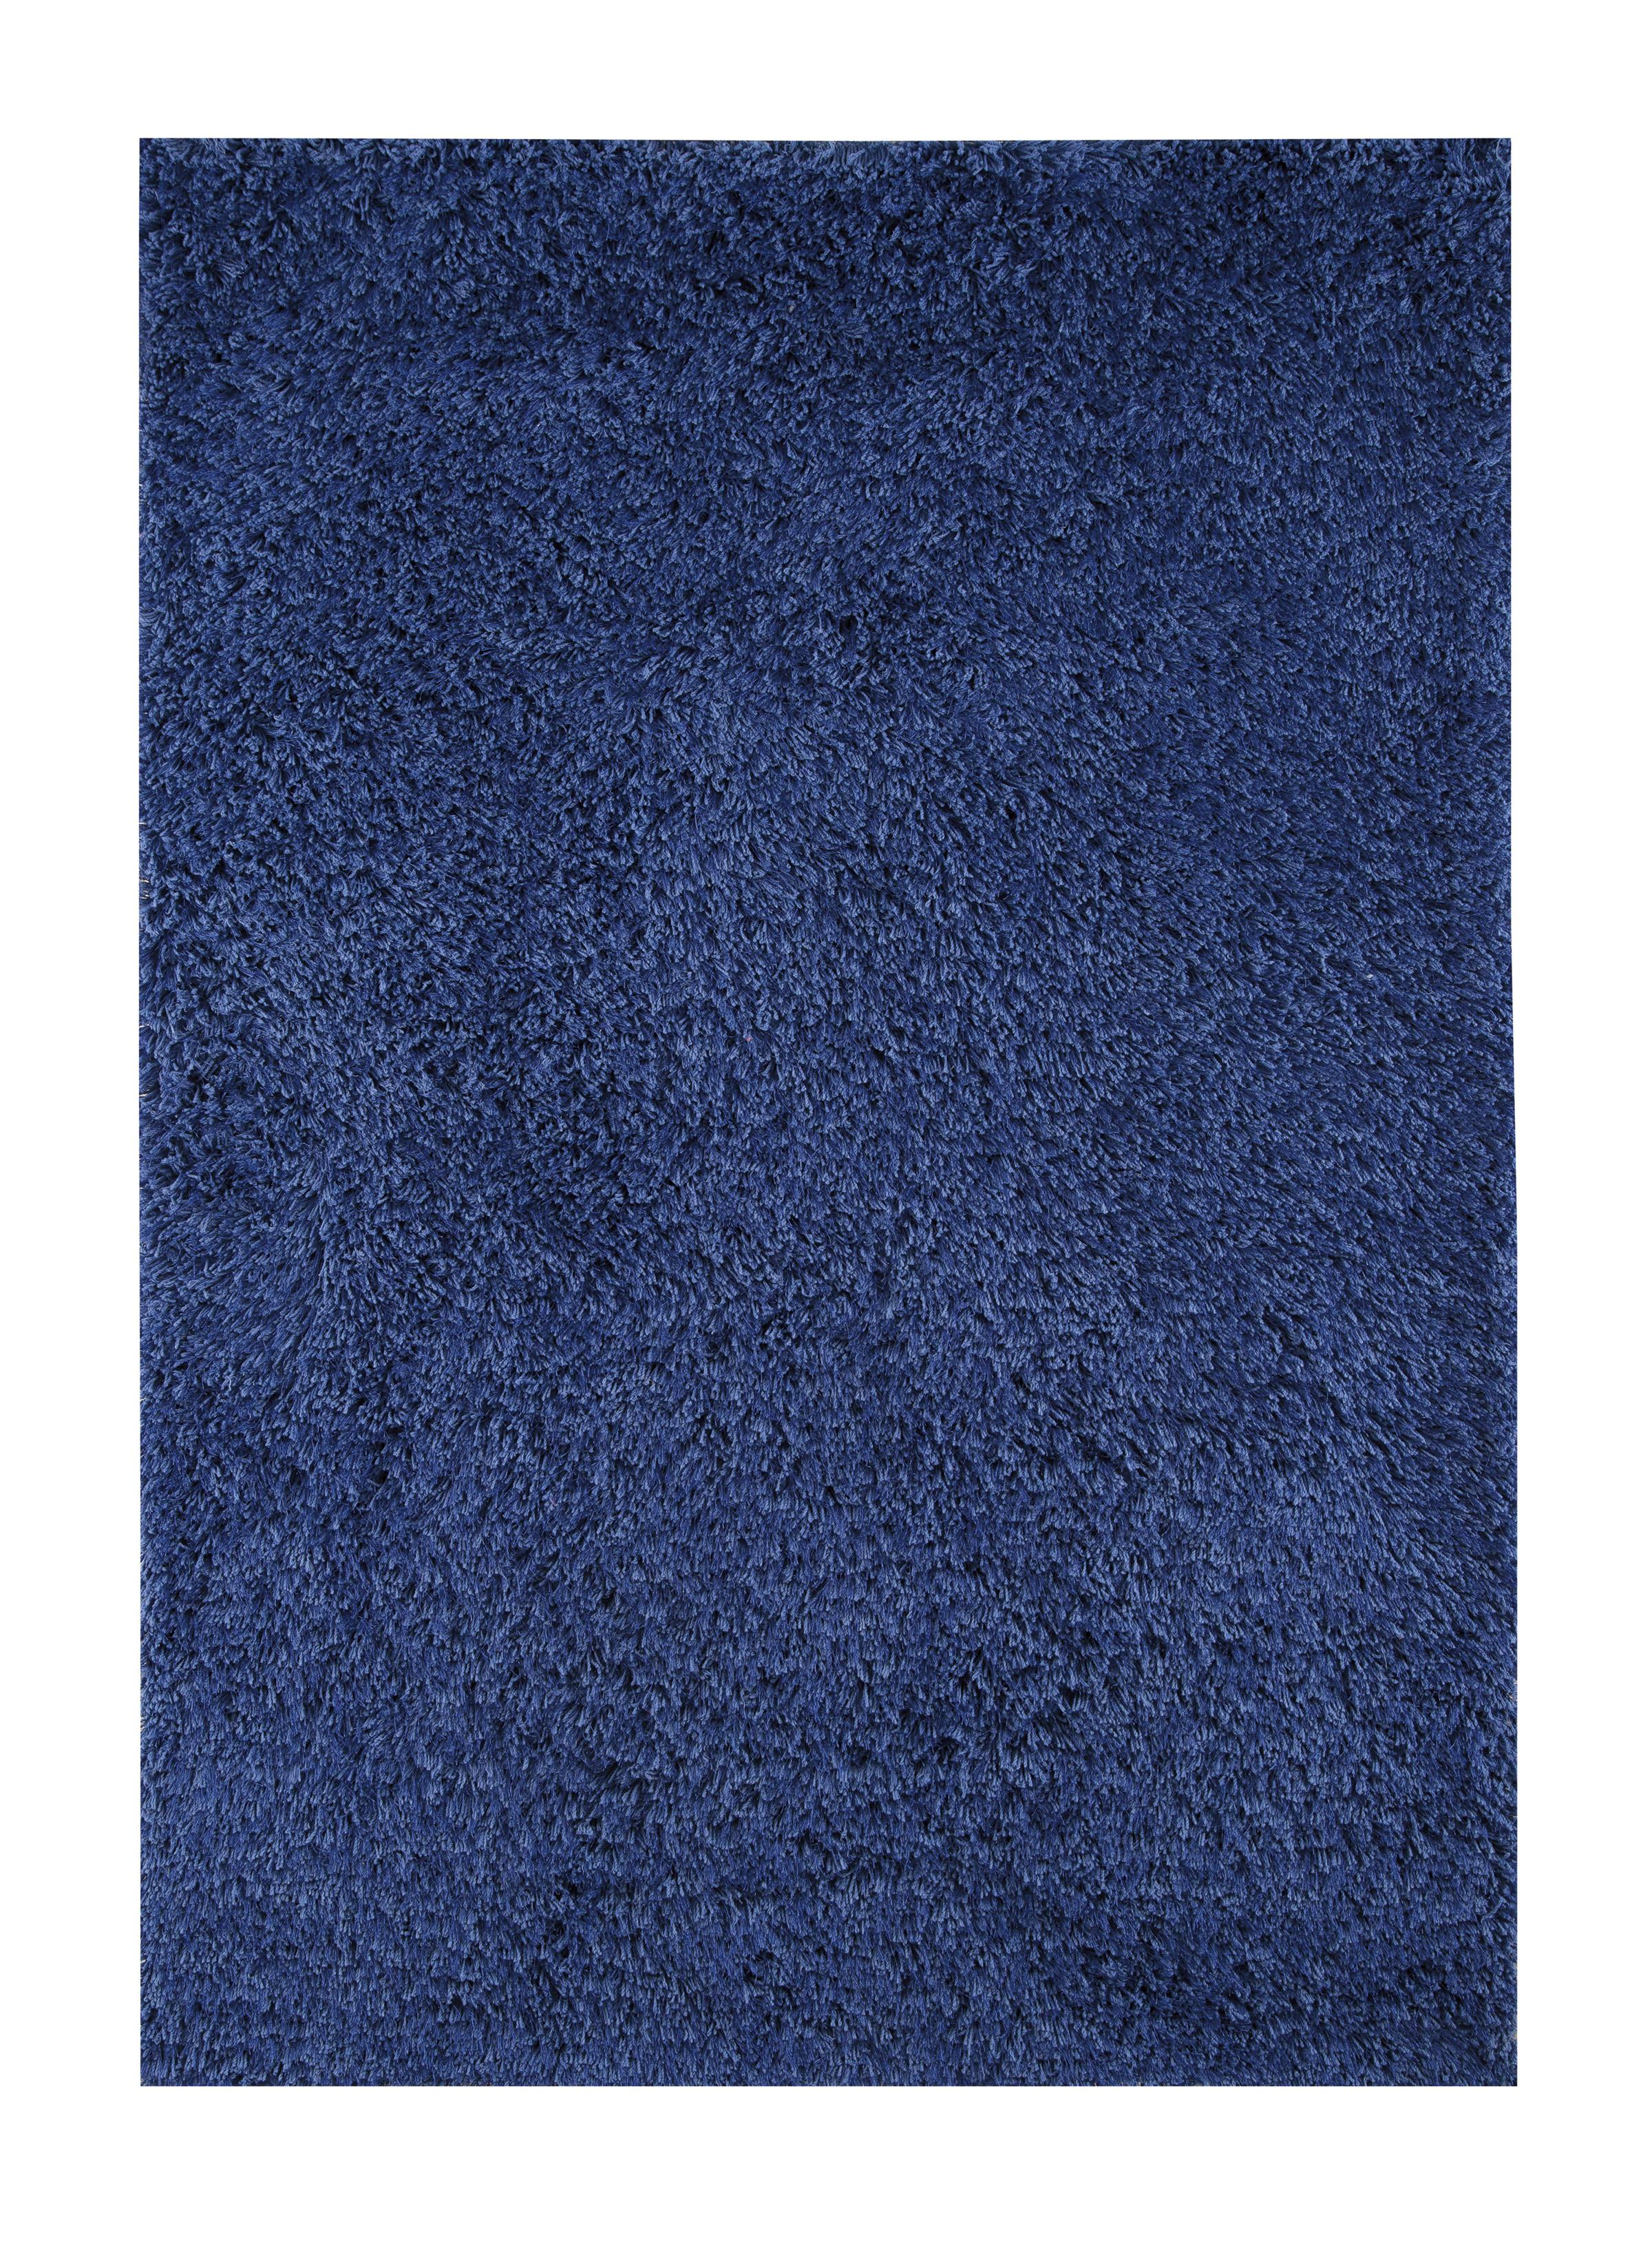 Signature Design by Ashley Transitional Area Rugs Alonso Blue Medium Rug - Item Number: R400562